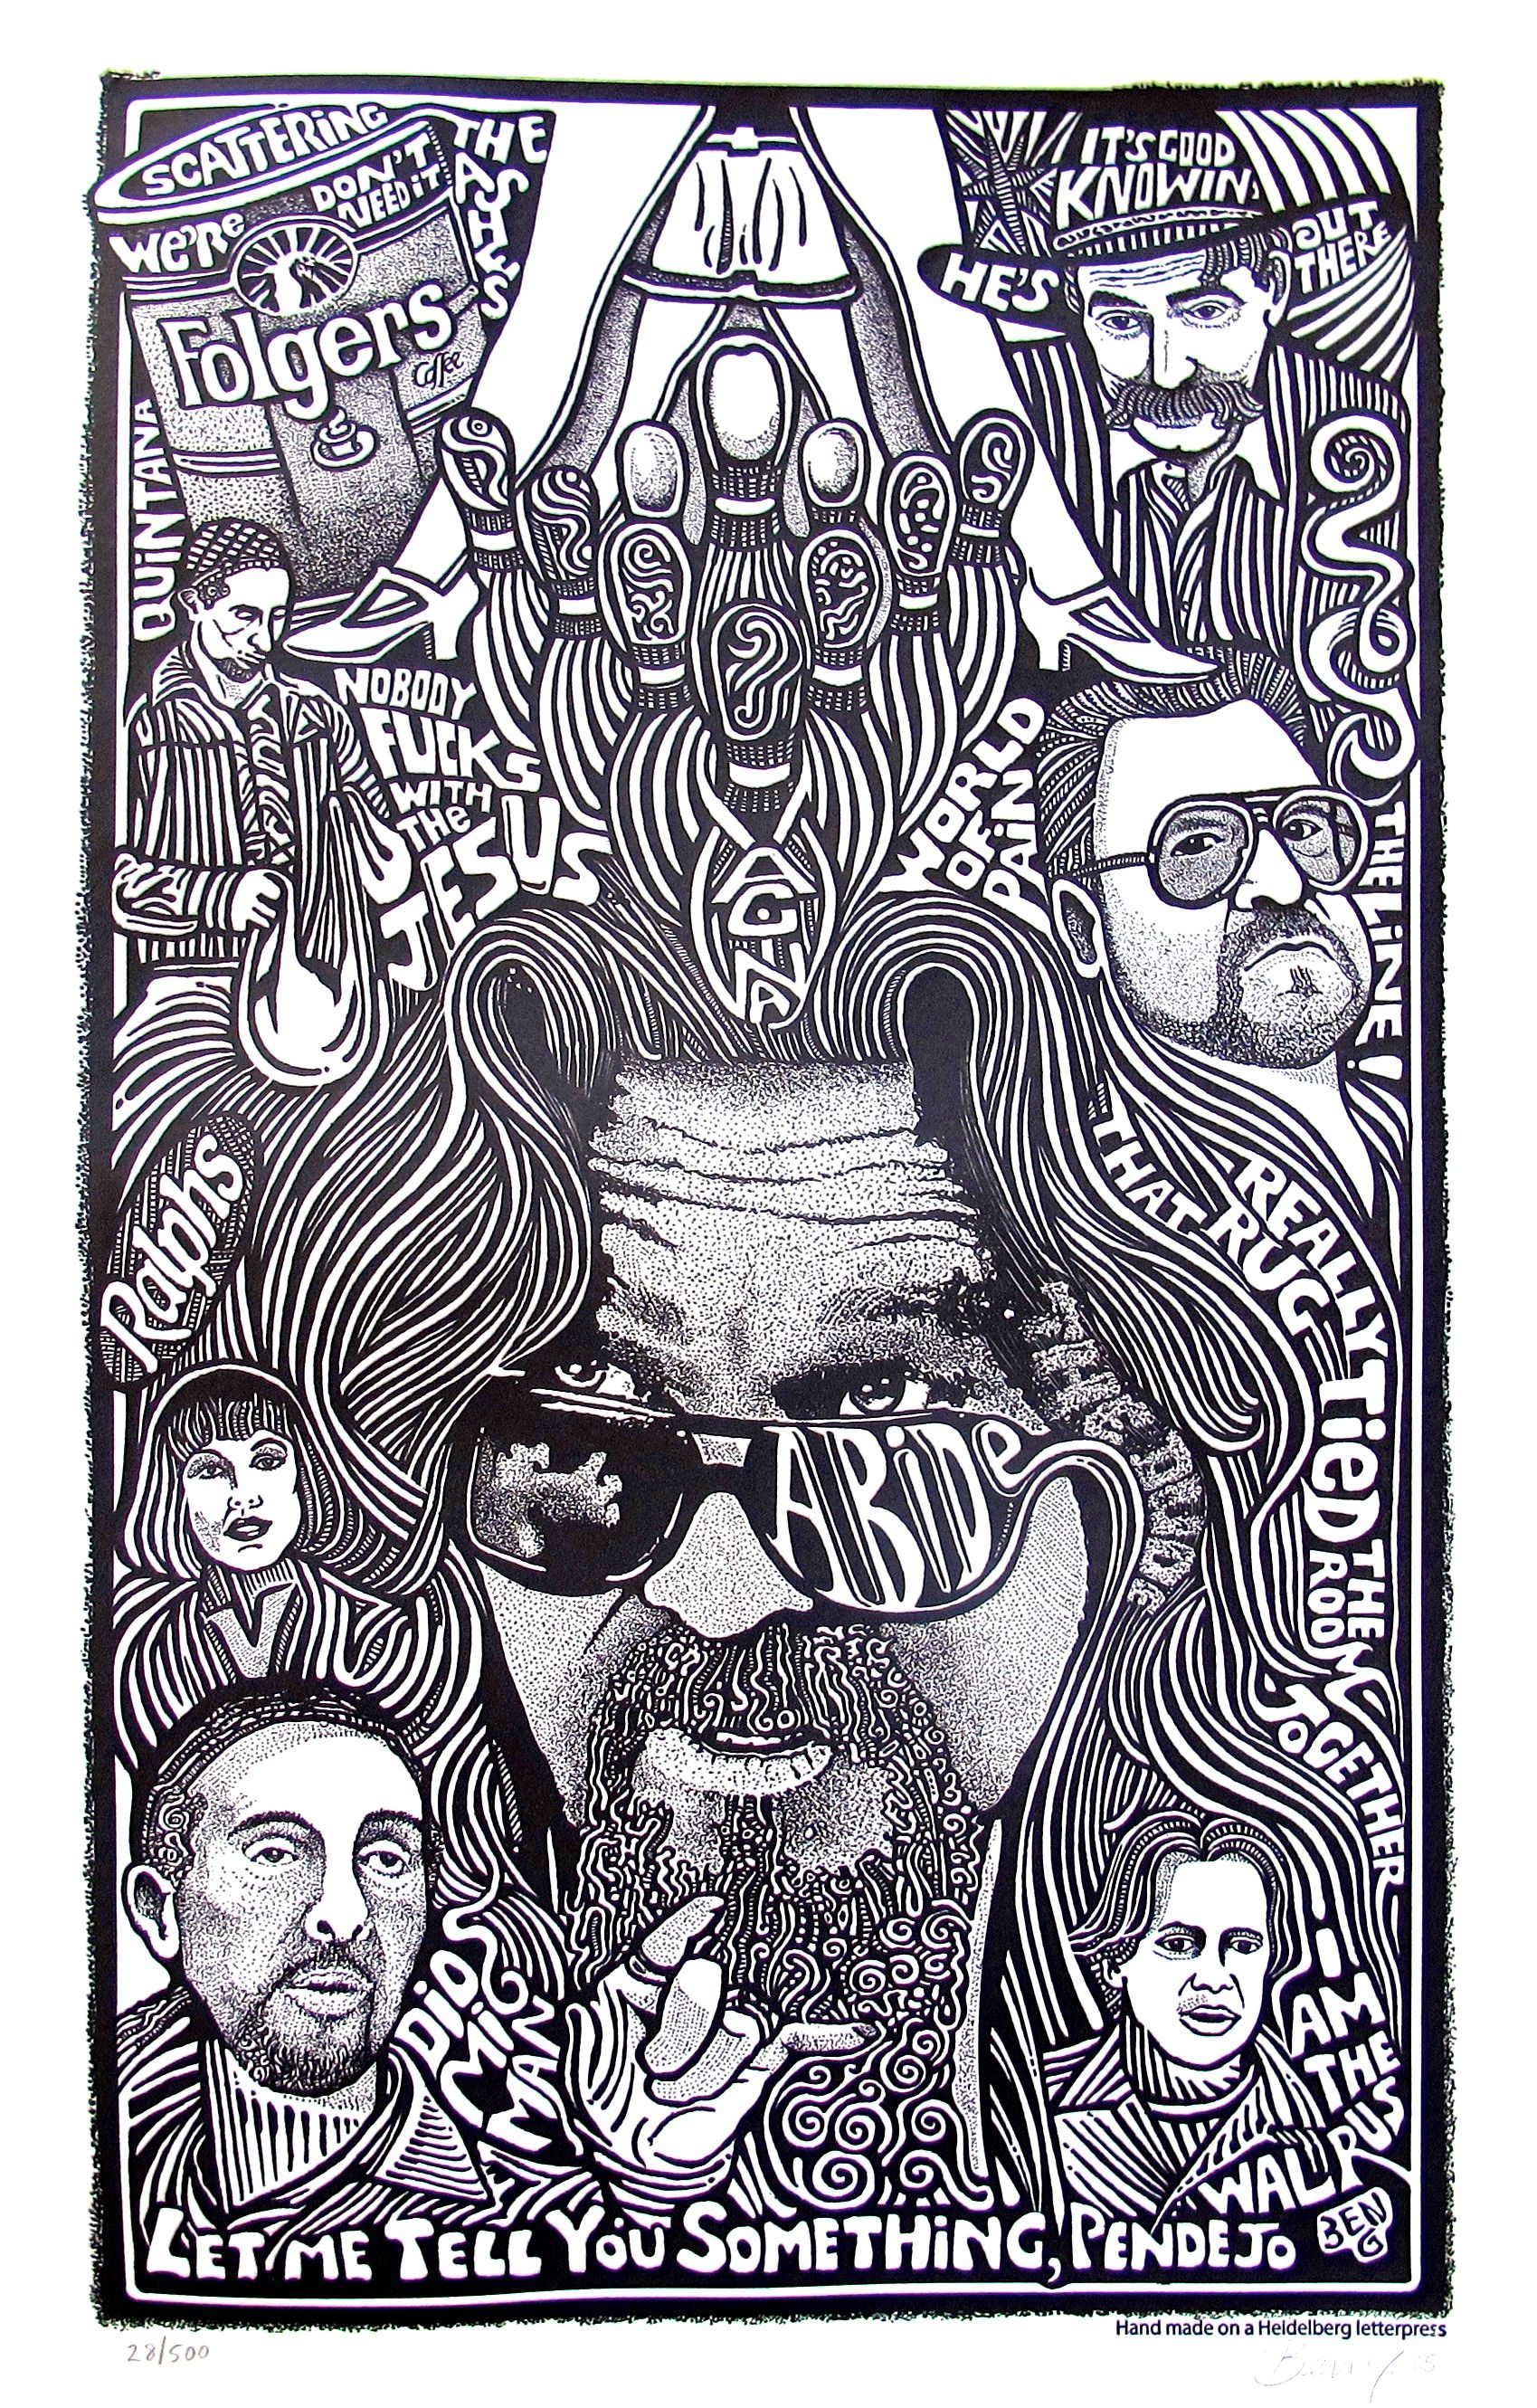 THE BIG LEBOWSKI MOVIE Psychedelic Hand Signed Posterography Letterpress ART